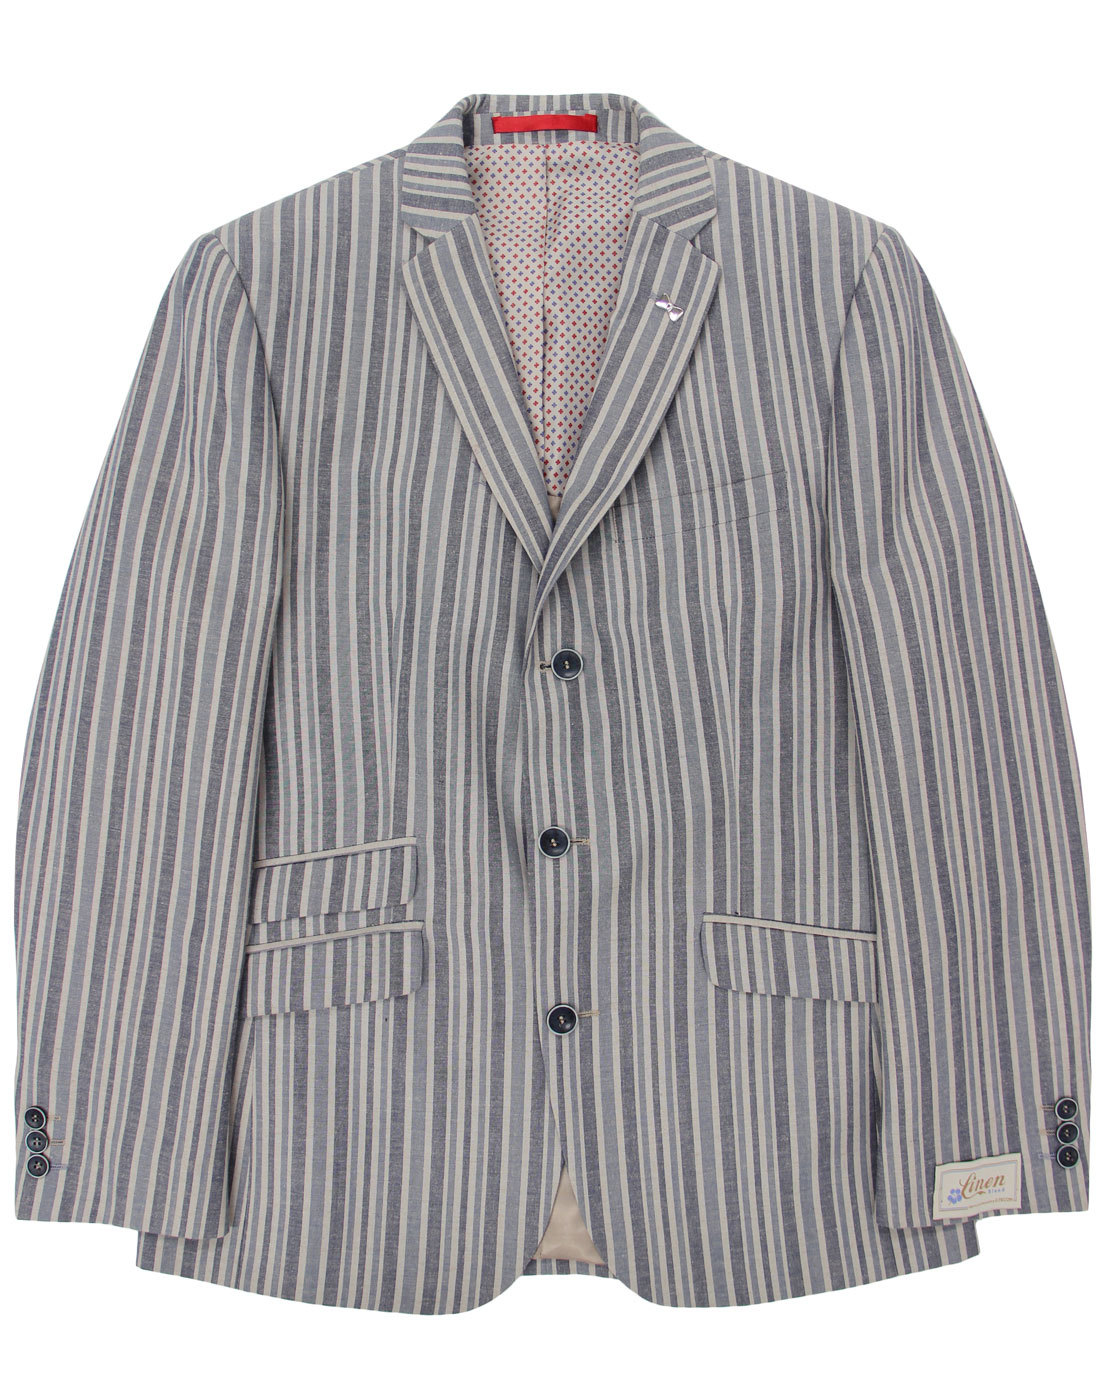 Retro 60s Mod Linen Blend Striped 3 Button Boating Blazer ...